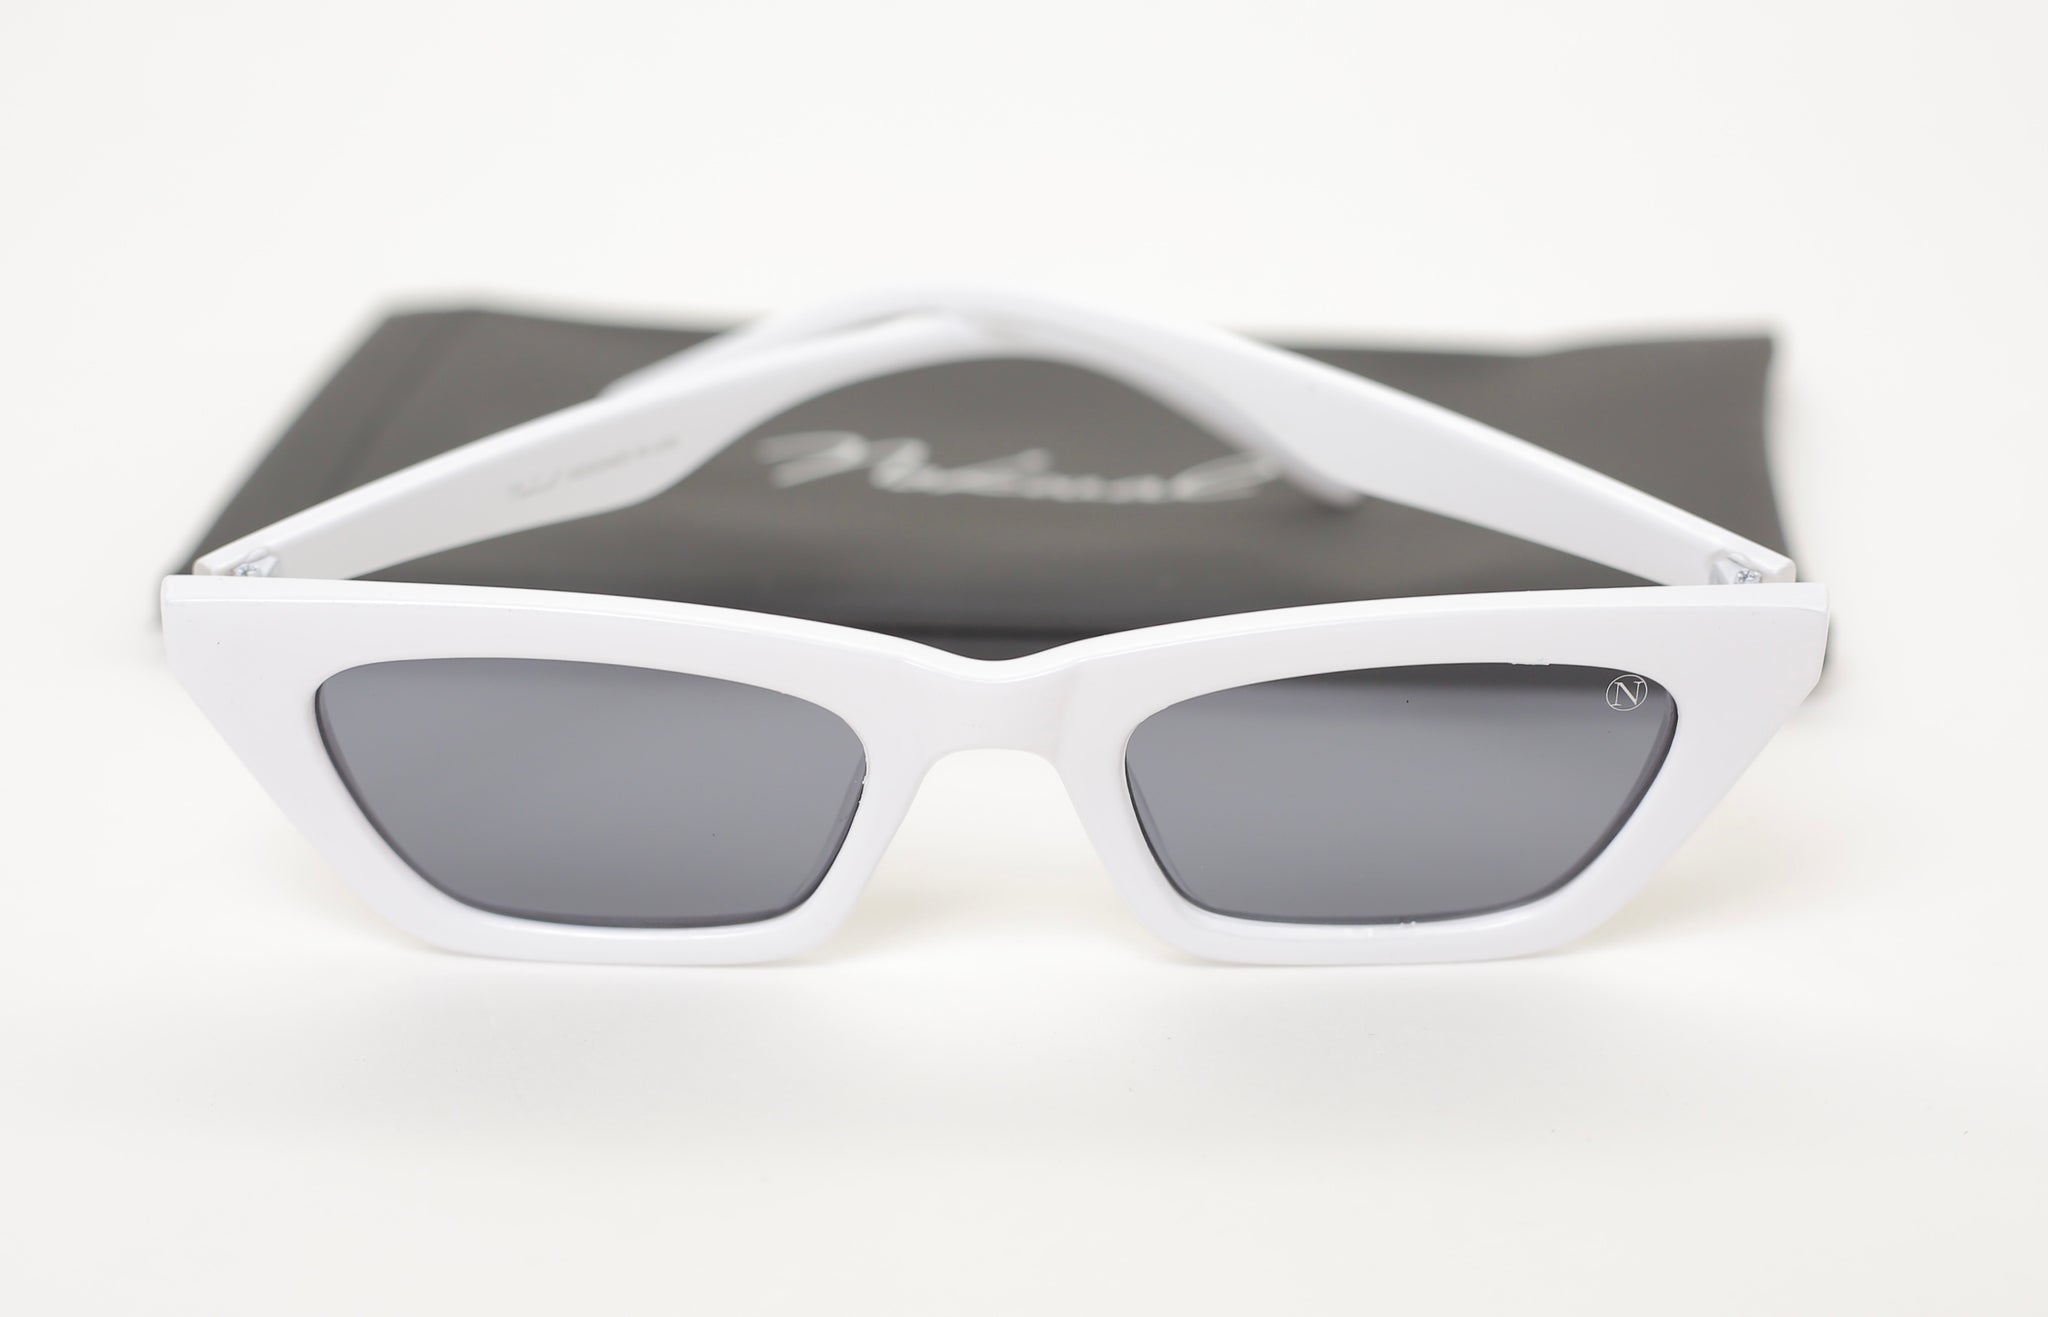 Blade Sunglasses W/Cover